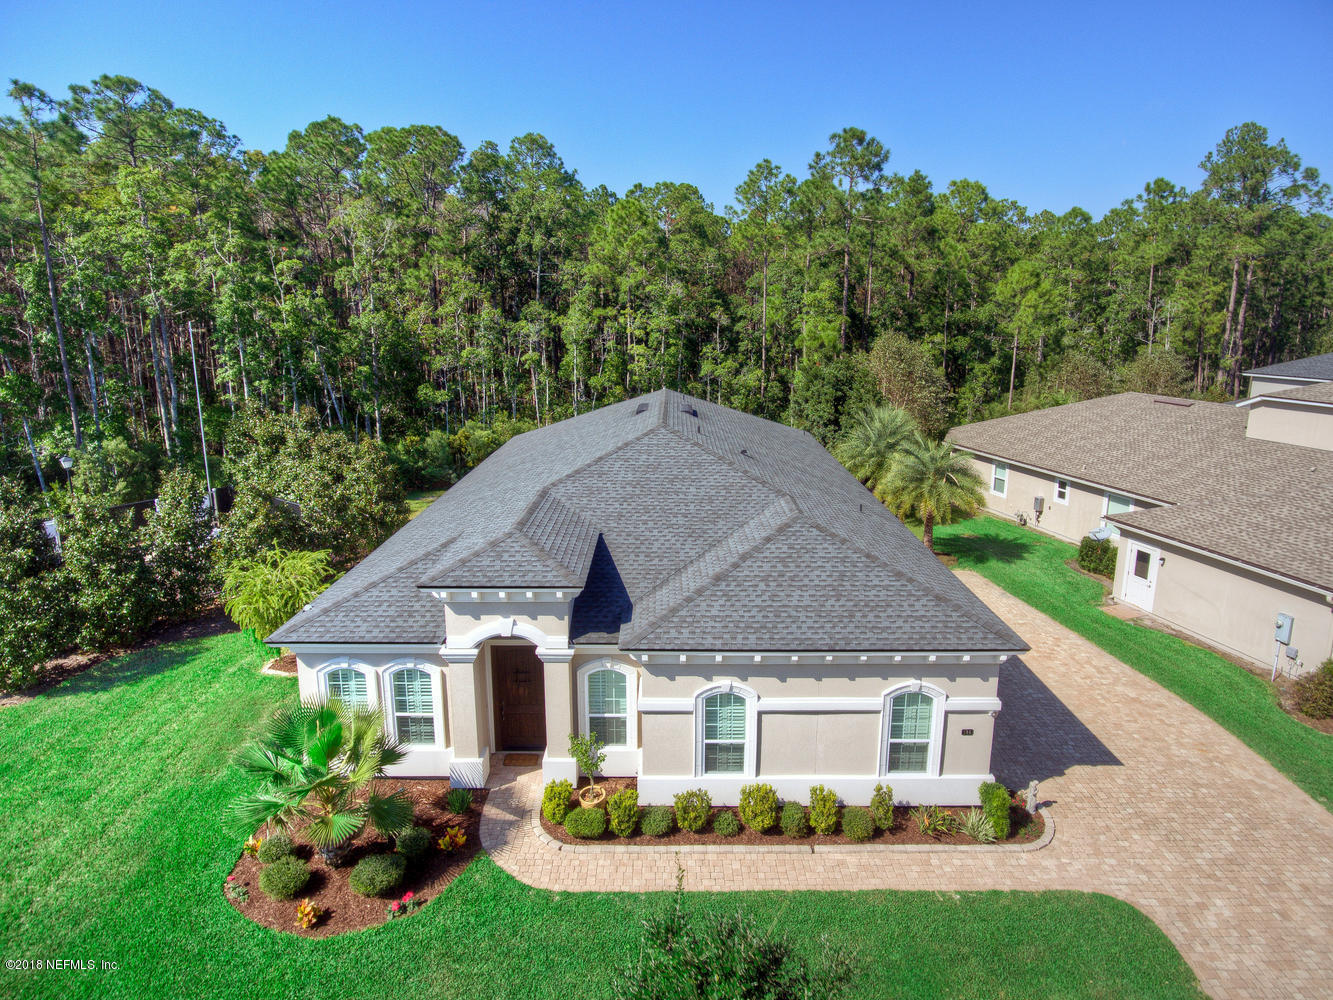 184 GULFSTREAM, PONTE VEDRA, FLORIDA 32081, 3 Bedrooms Bedrooms, ,3 BathroomsBathrooms,Residential - single family,For sale,GULFSTREAM,964916